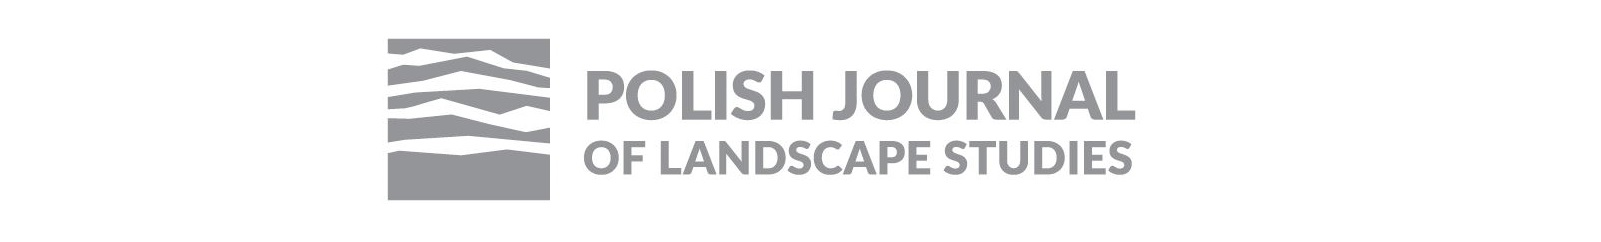 Polish Journal of Landscape Studies